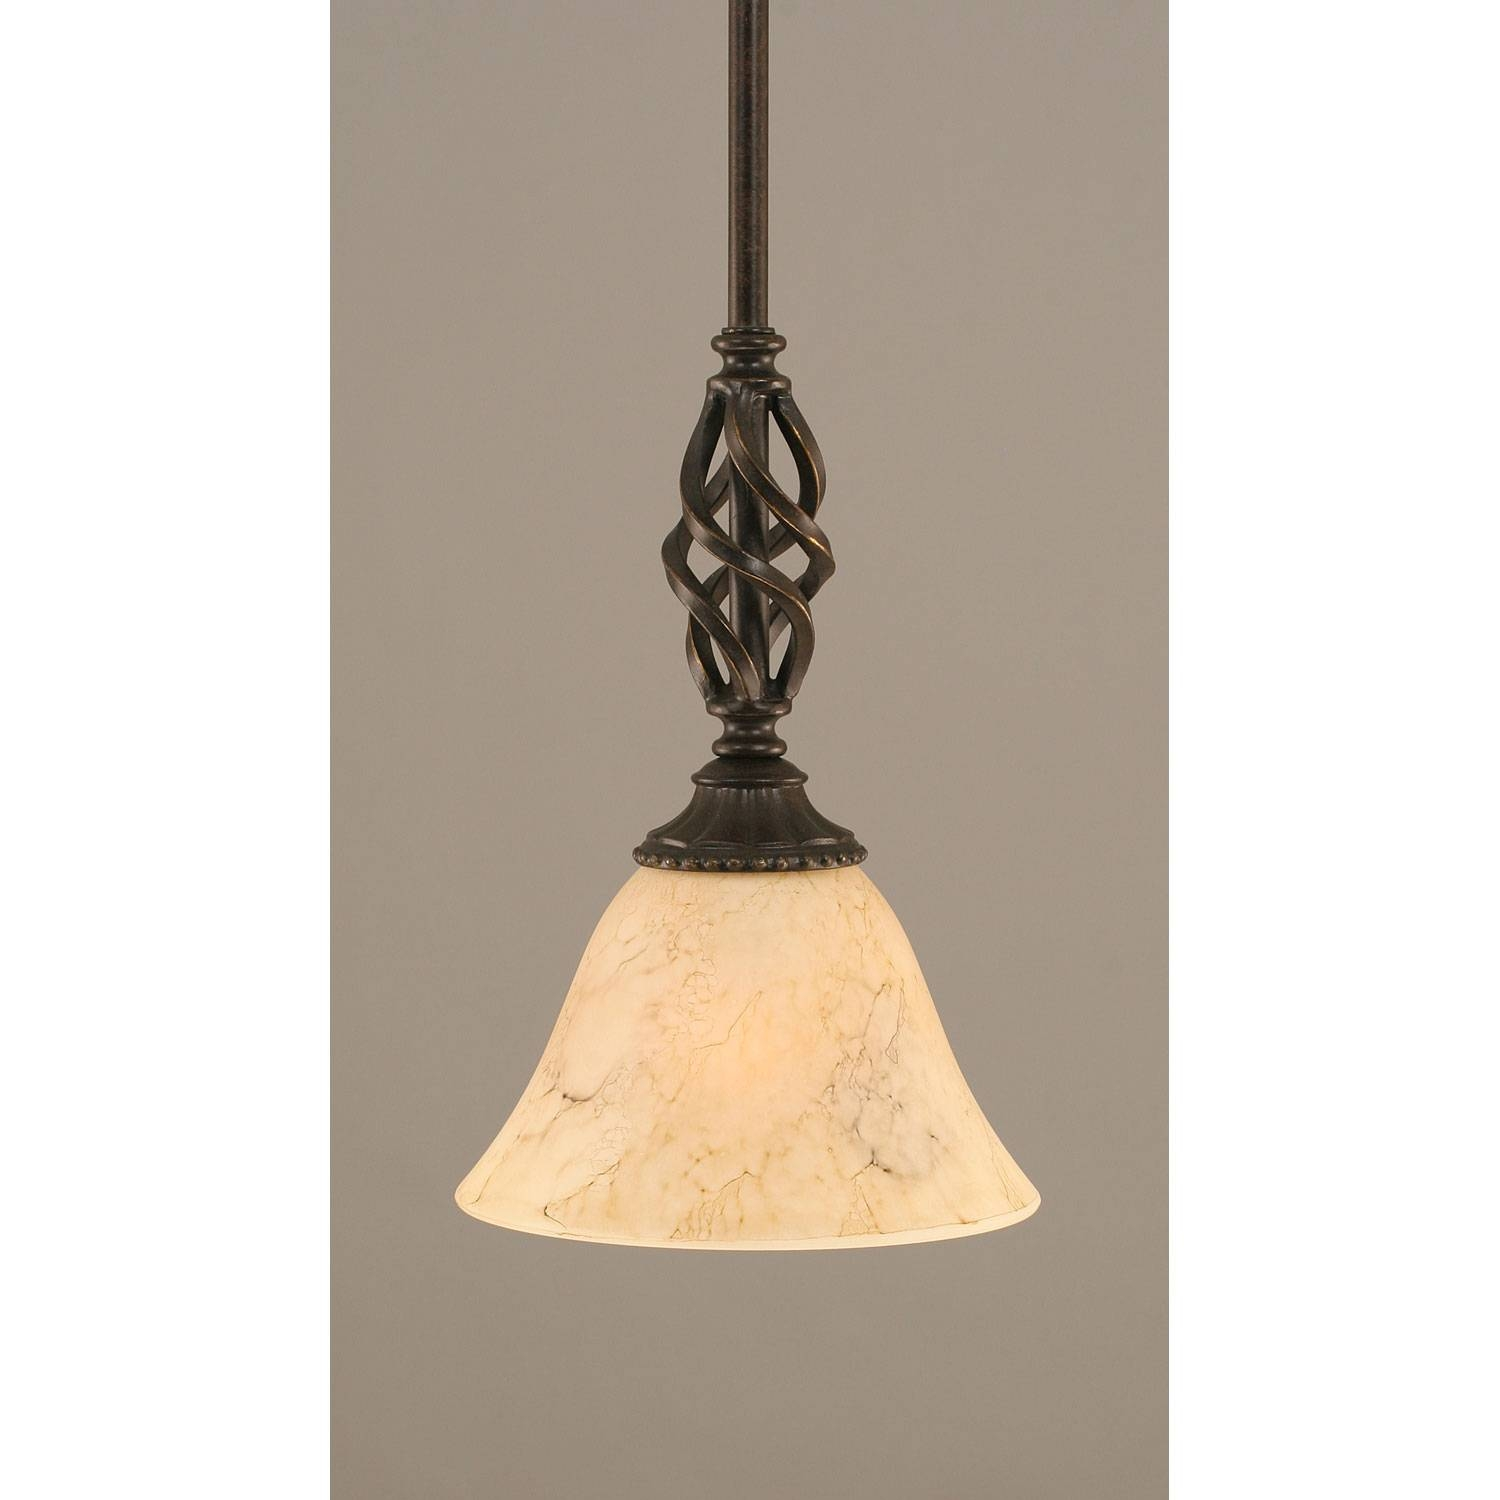 Mini Pendant Lighting | Bronze, Nickel, Steel Mini Pendants For within Halogen Mini Pendant Lights (Image 12 of 15)